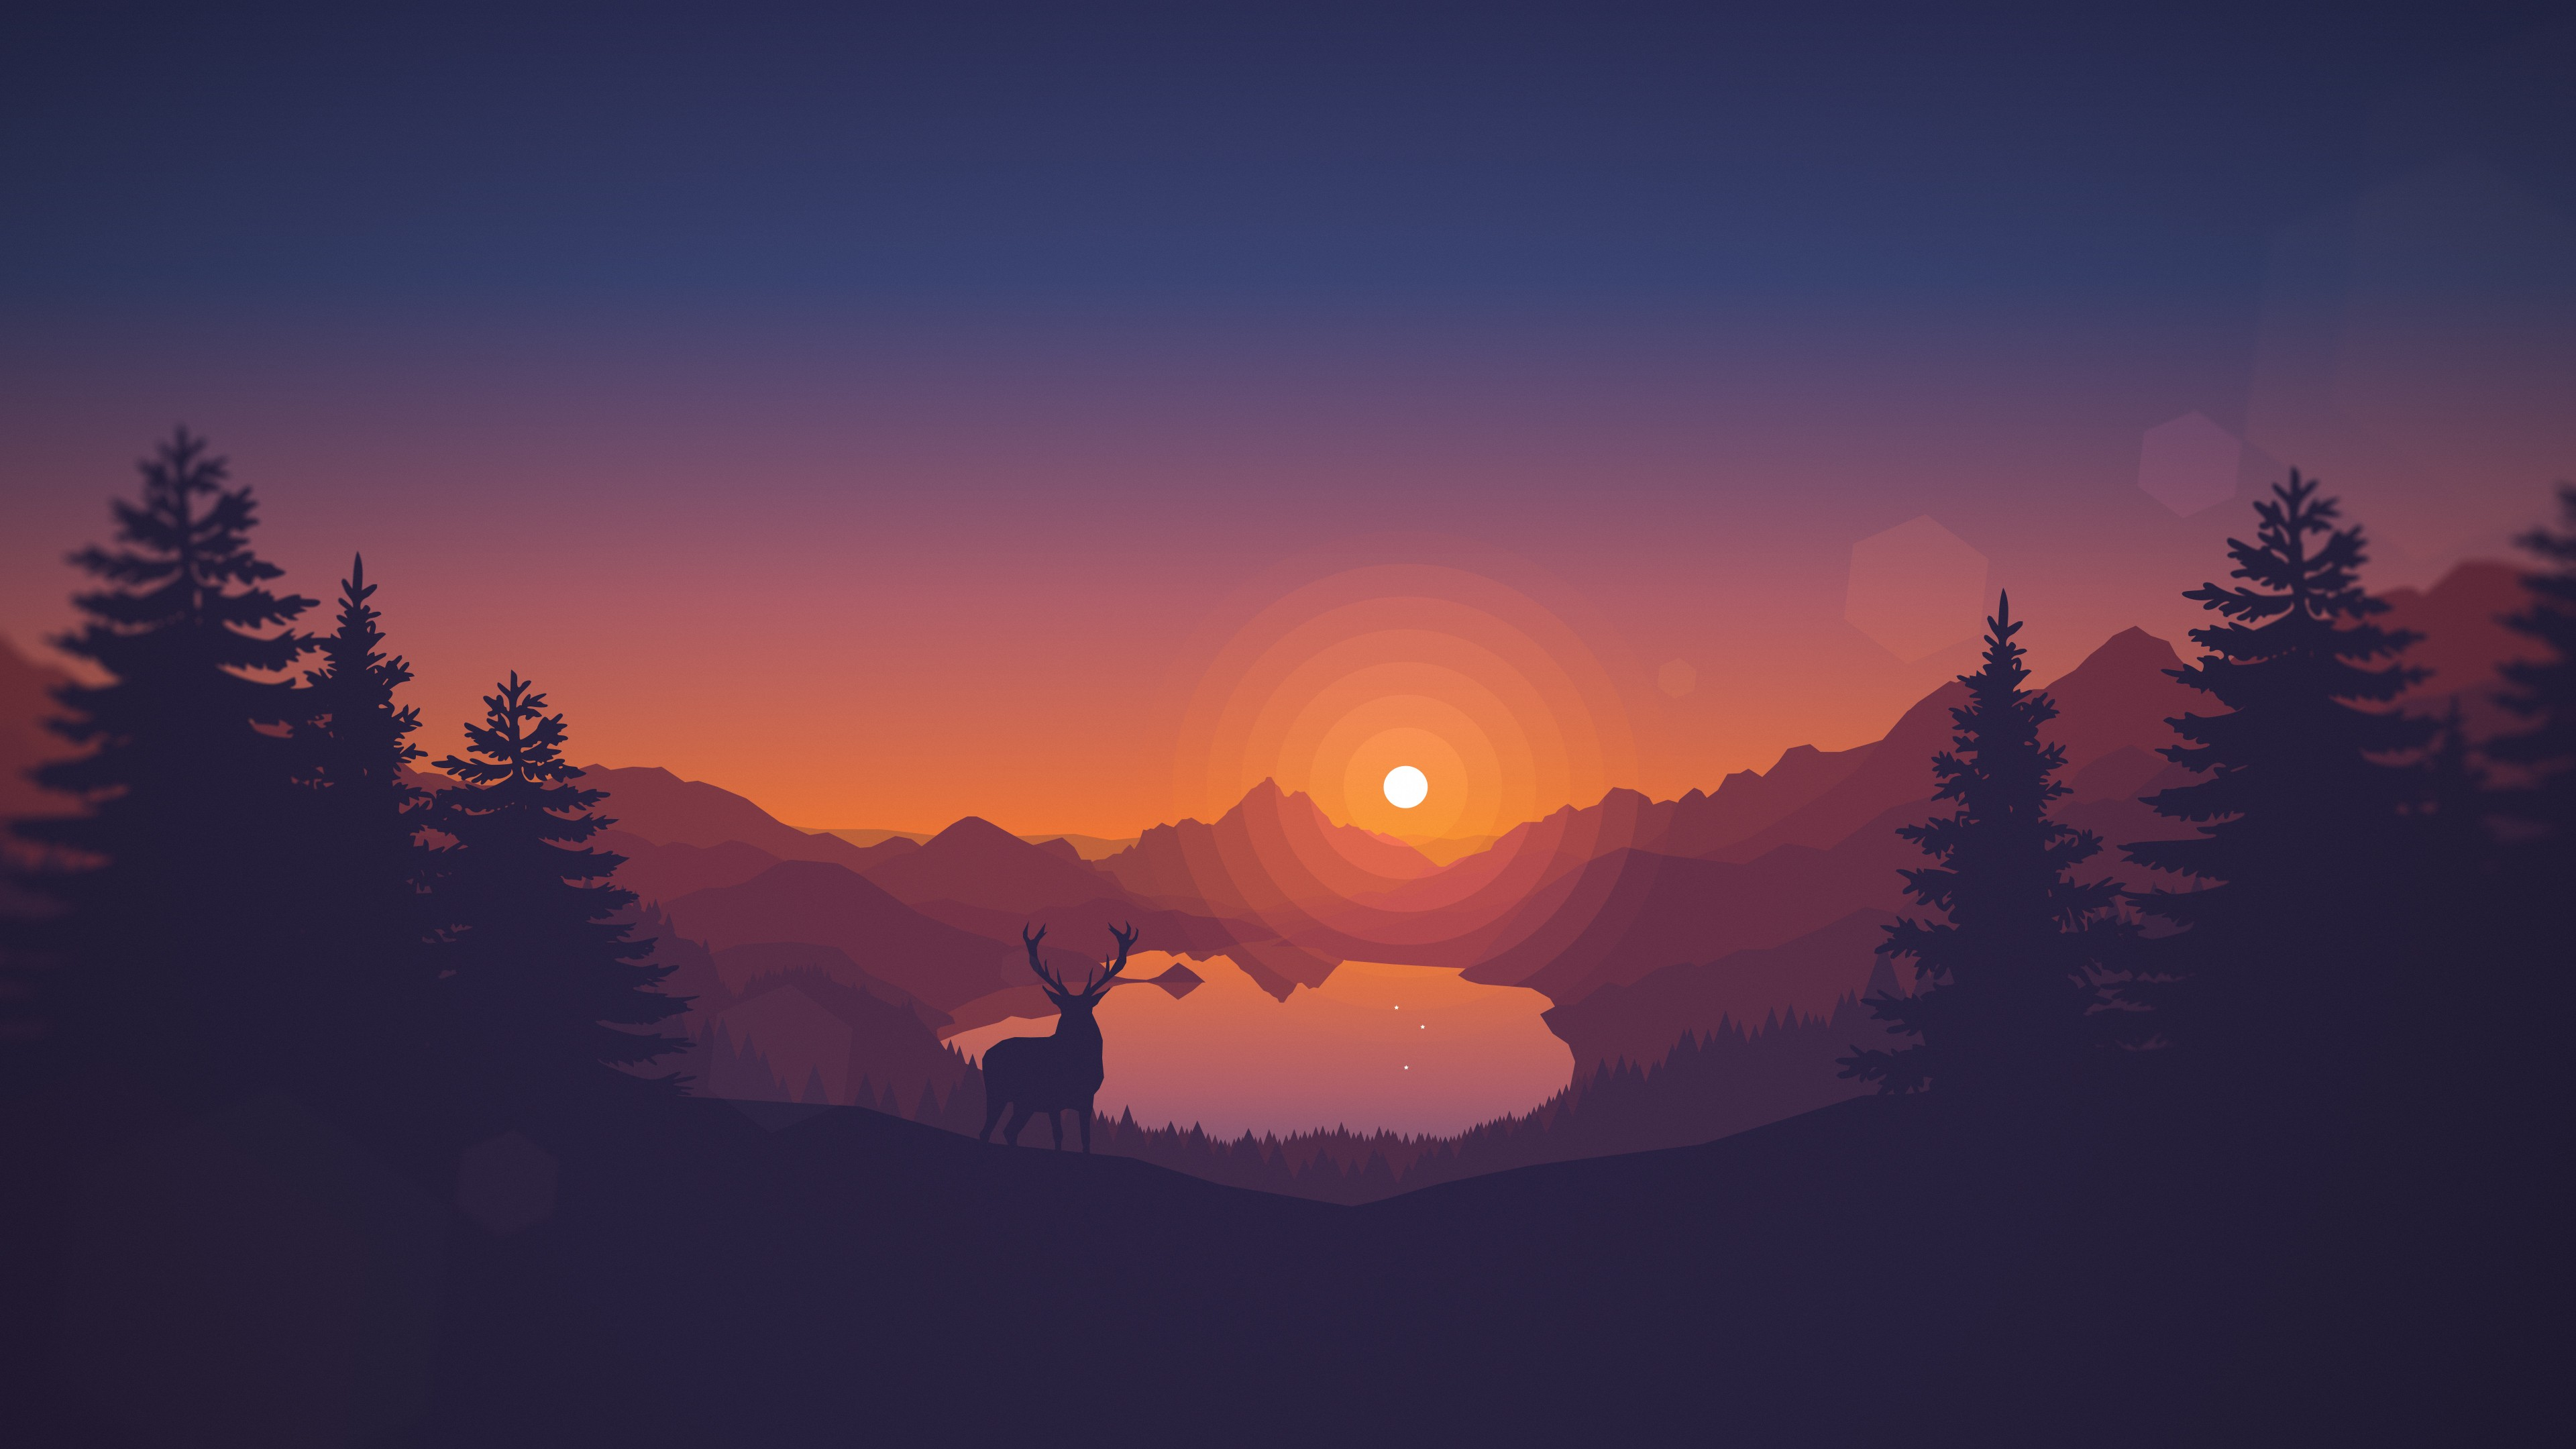 3840x2160 Wallpaper Landscape, Drawing, Deer, Digital Art, Animals, Video